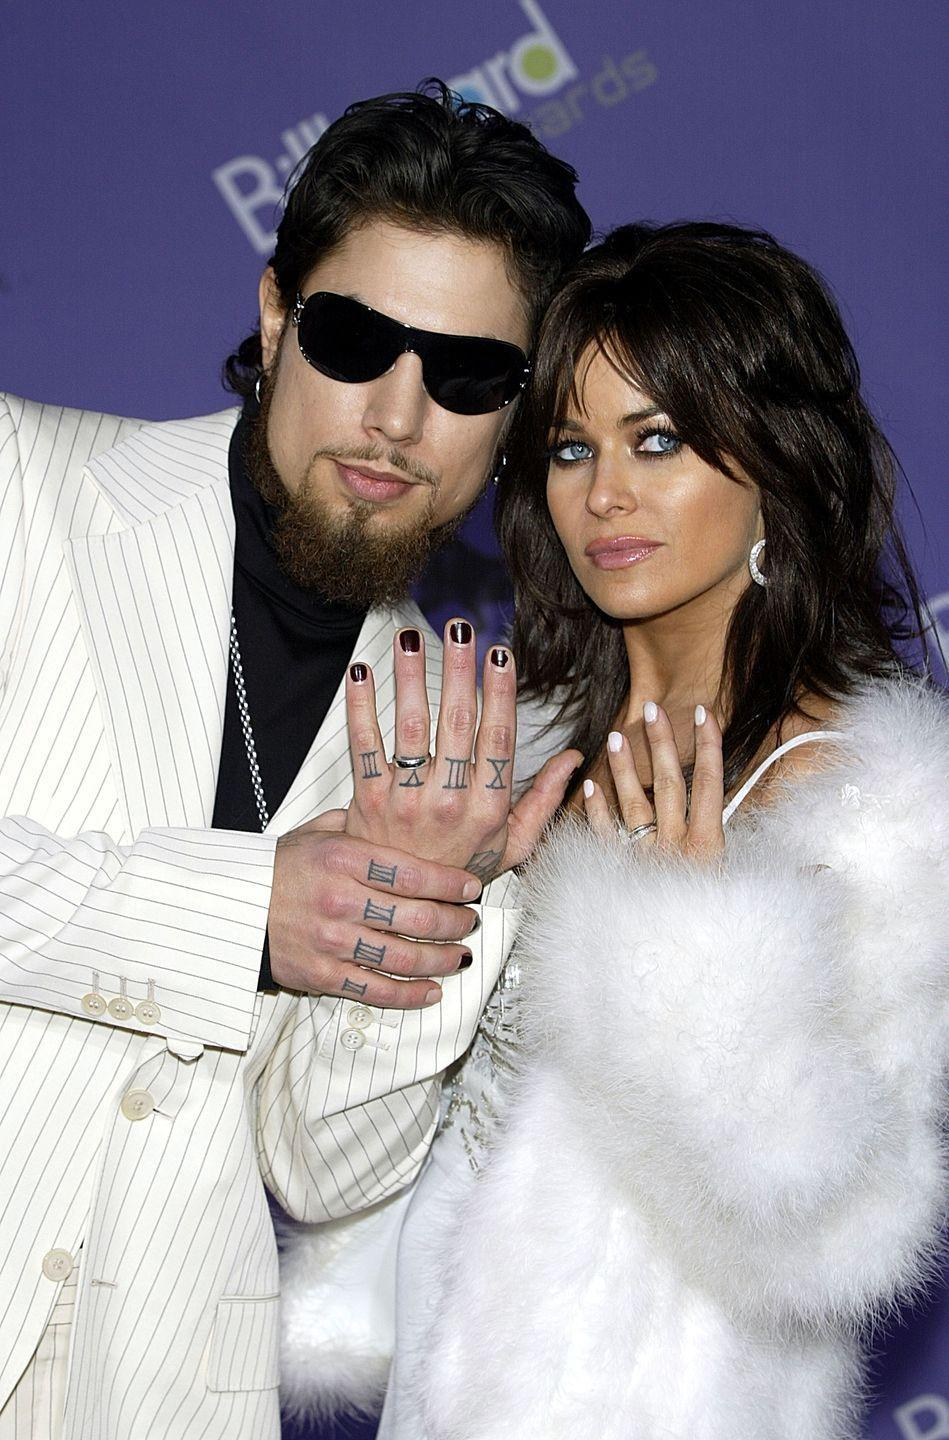 <p>Carmen Electra serves us a fuzzy white fur moment, while her then hubby, rocker Dave Navarro, gets a little gangster in a white pinstripe suit. The pair shared their lives with MTV cameras in <em>'Til Death Do Us Part </em>for two seasons.</p>